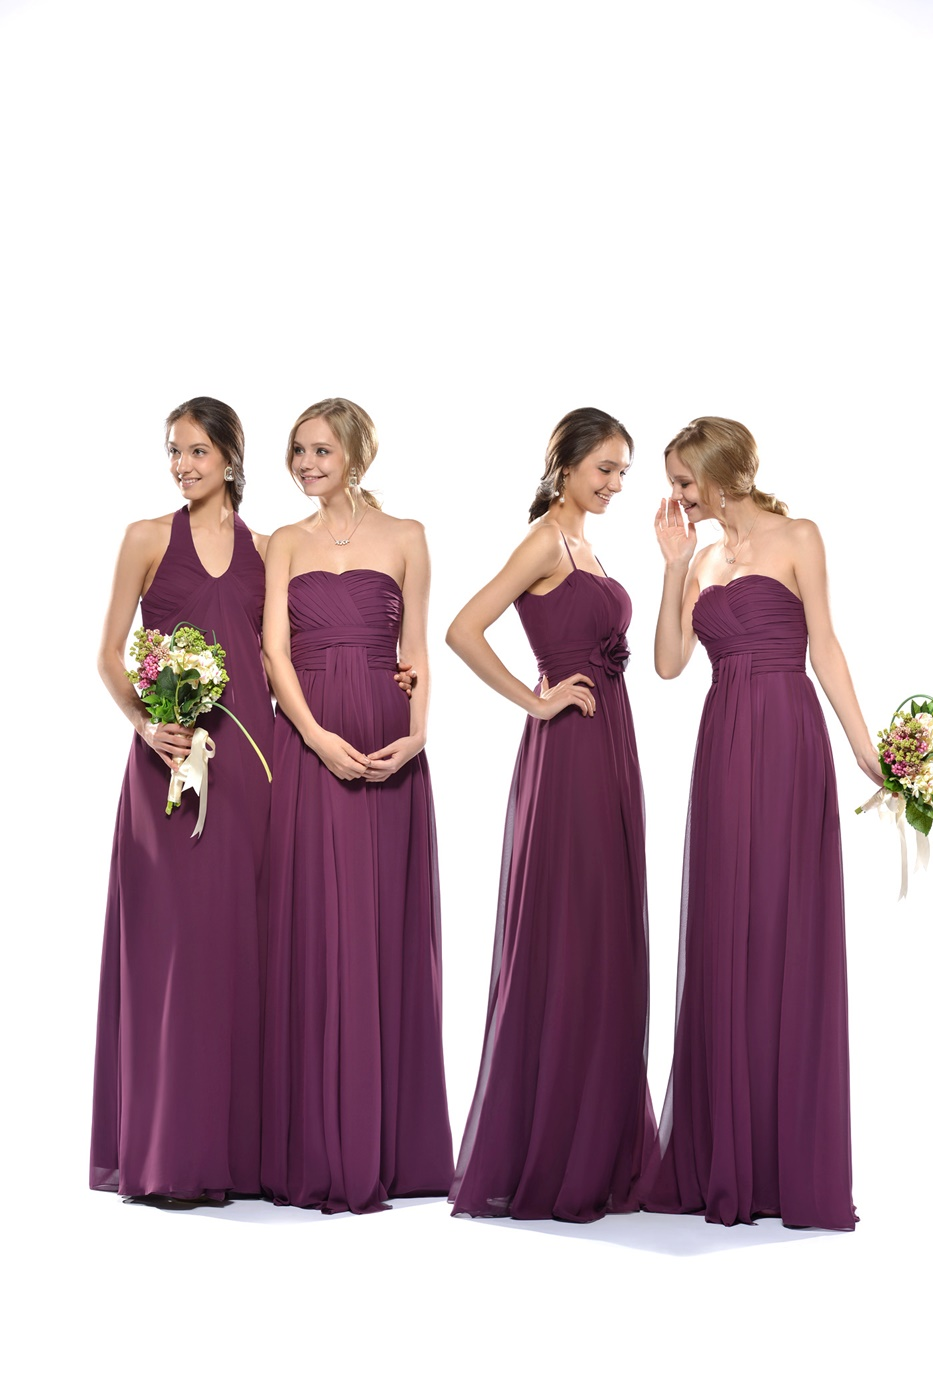 Fashionable Ruched Sheath/Column Halter Floor-Length Bridesmaid Dress